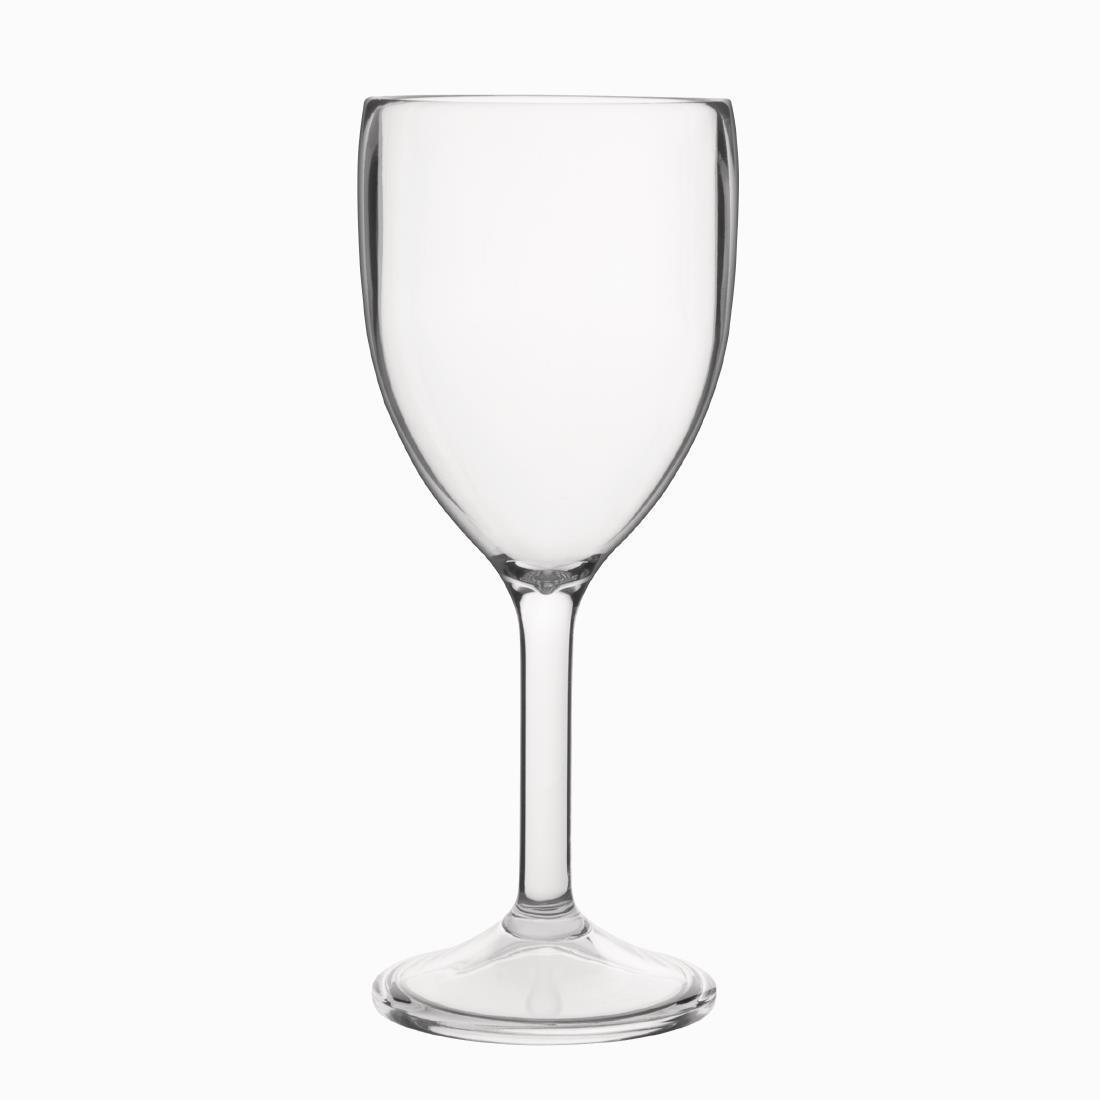 Kristallon Polycarbonate Wine Glasses 300ml - Case 12 - DS130